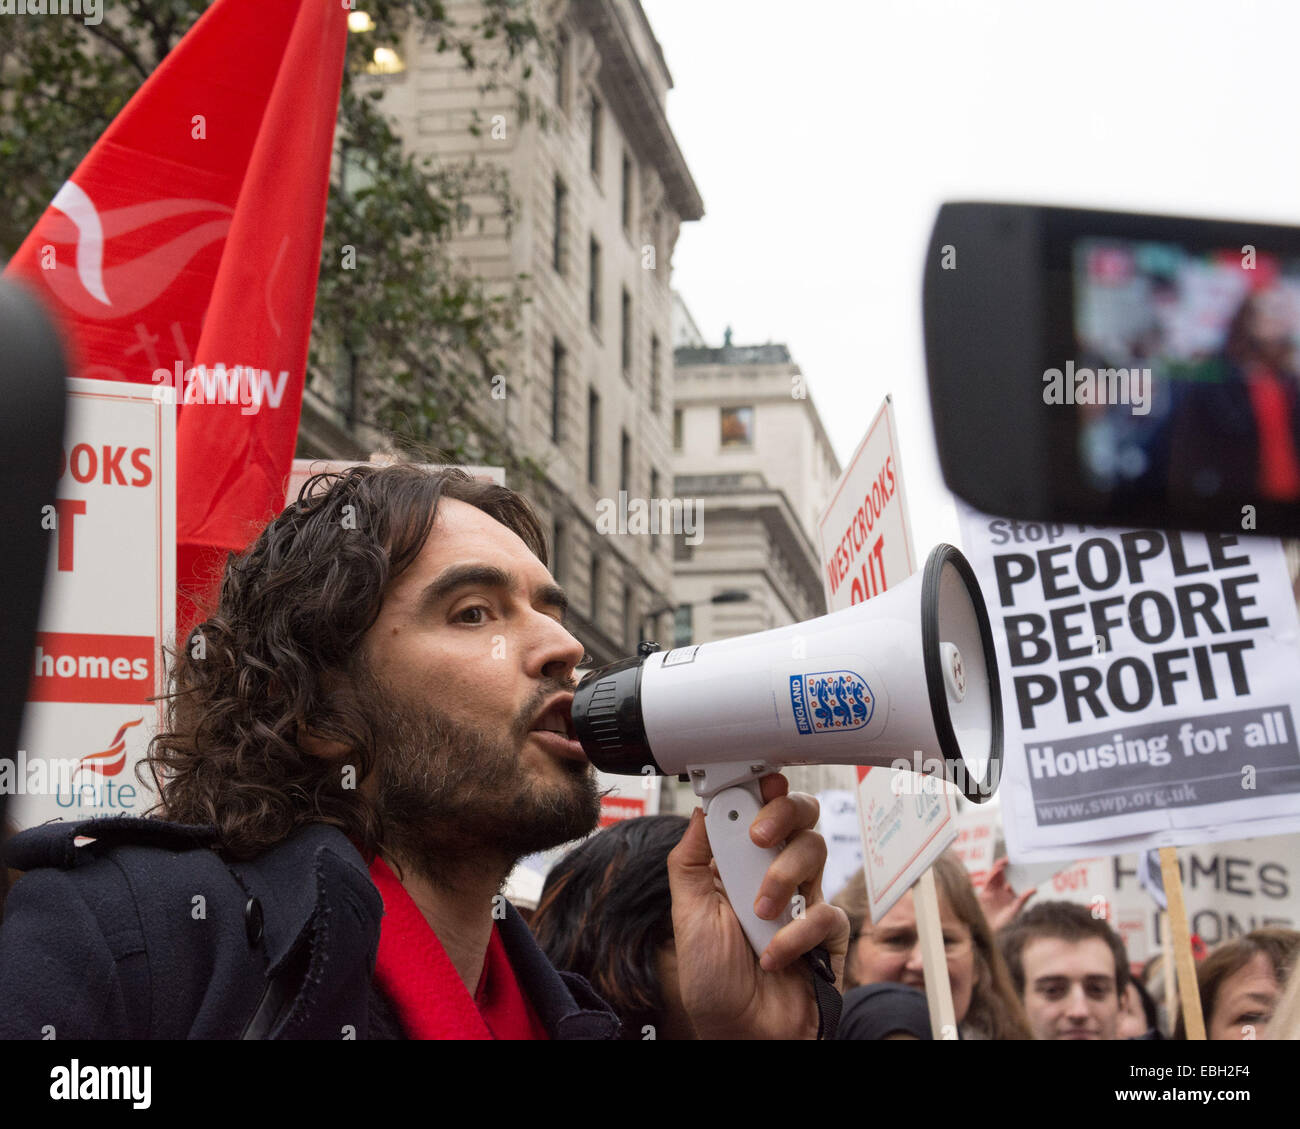 London UK, 1st December 2014. Russell Brand speaks as protesters hold a demonstration to save the New Era housing - Stock Image